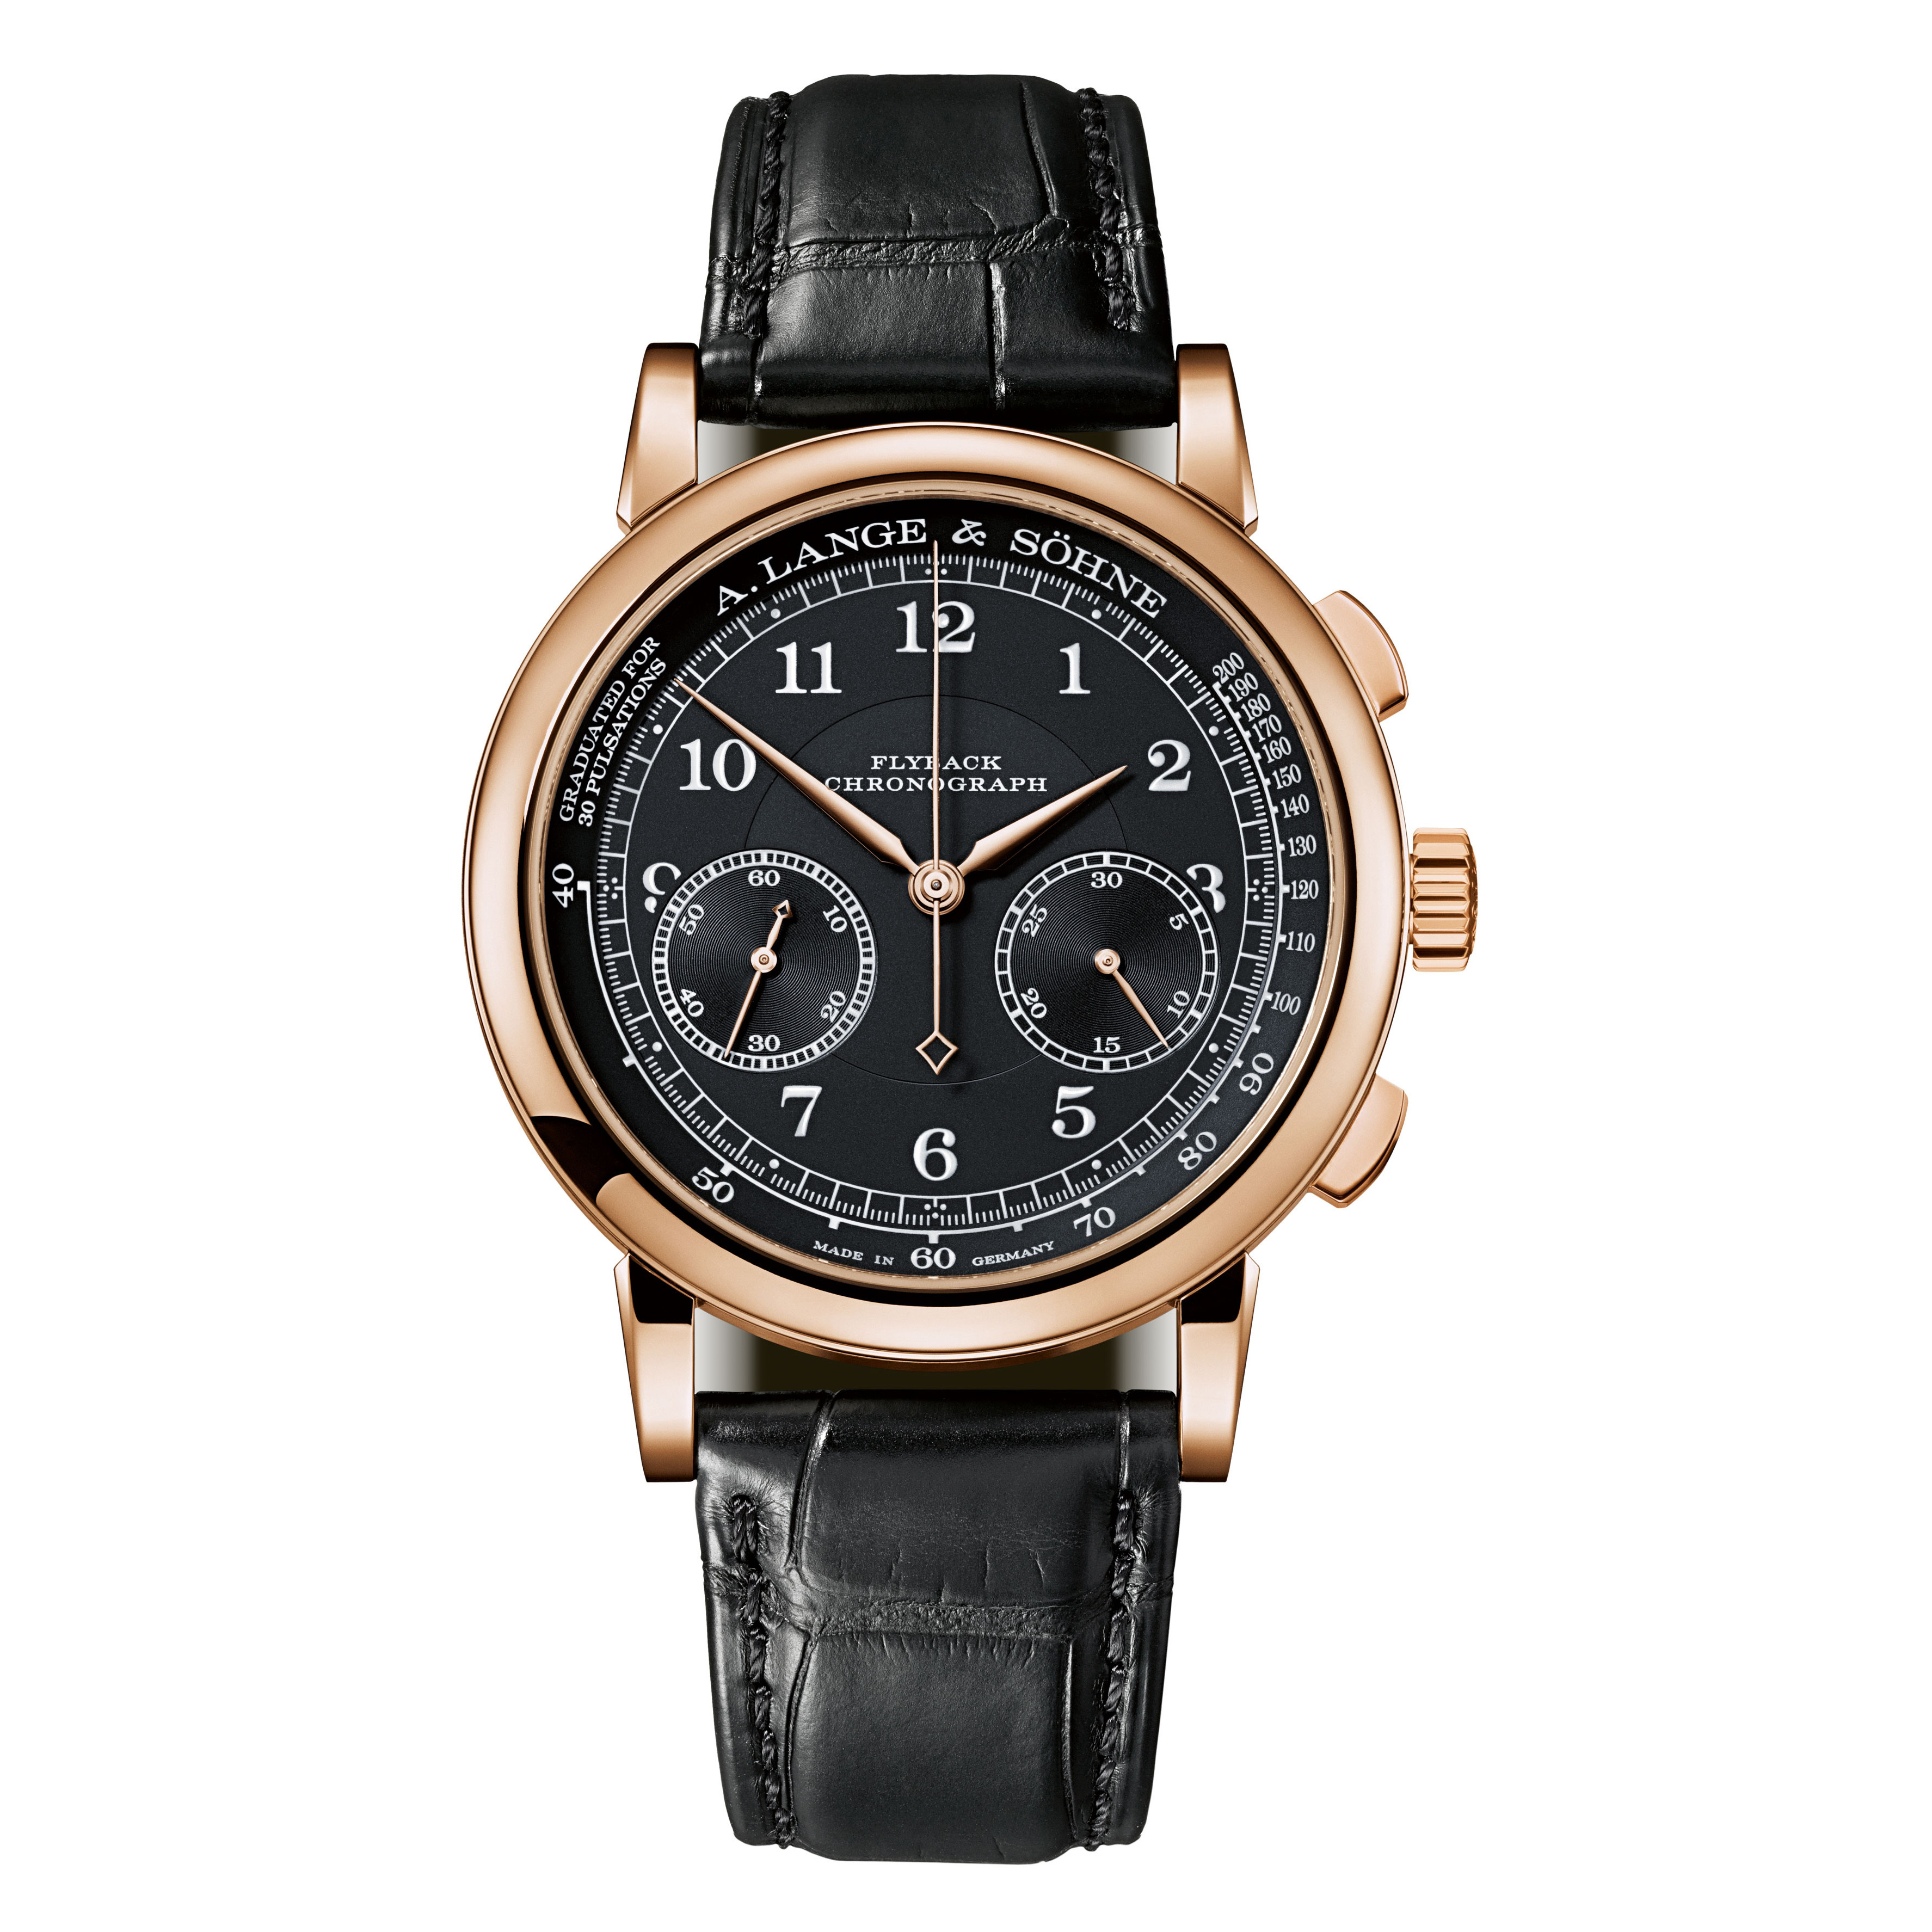 1815 Chronograph Rose Gold (414.031)